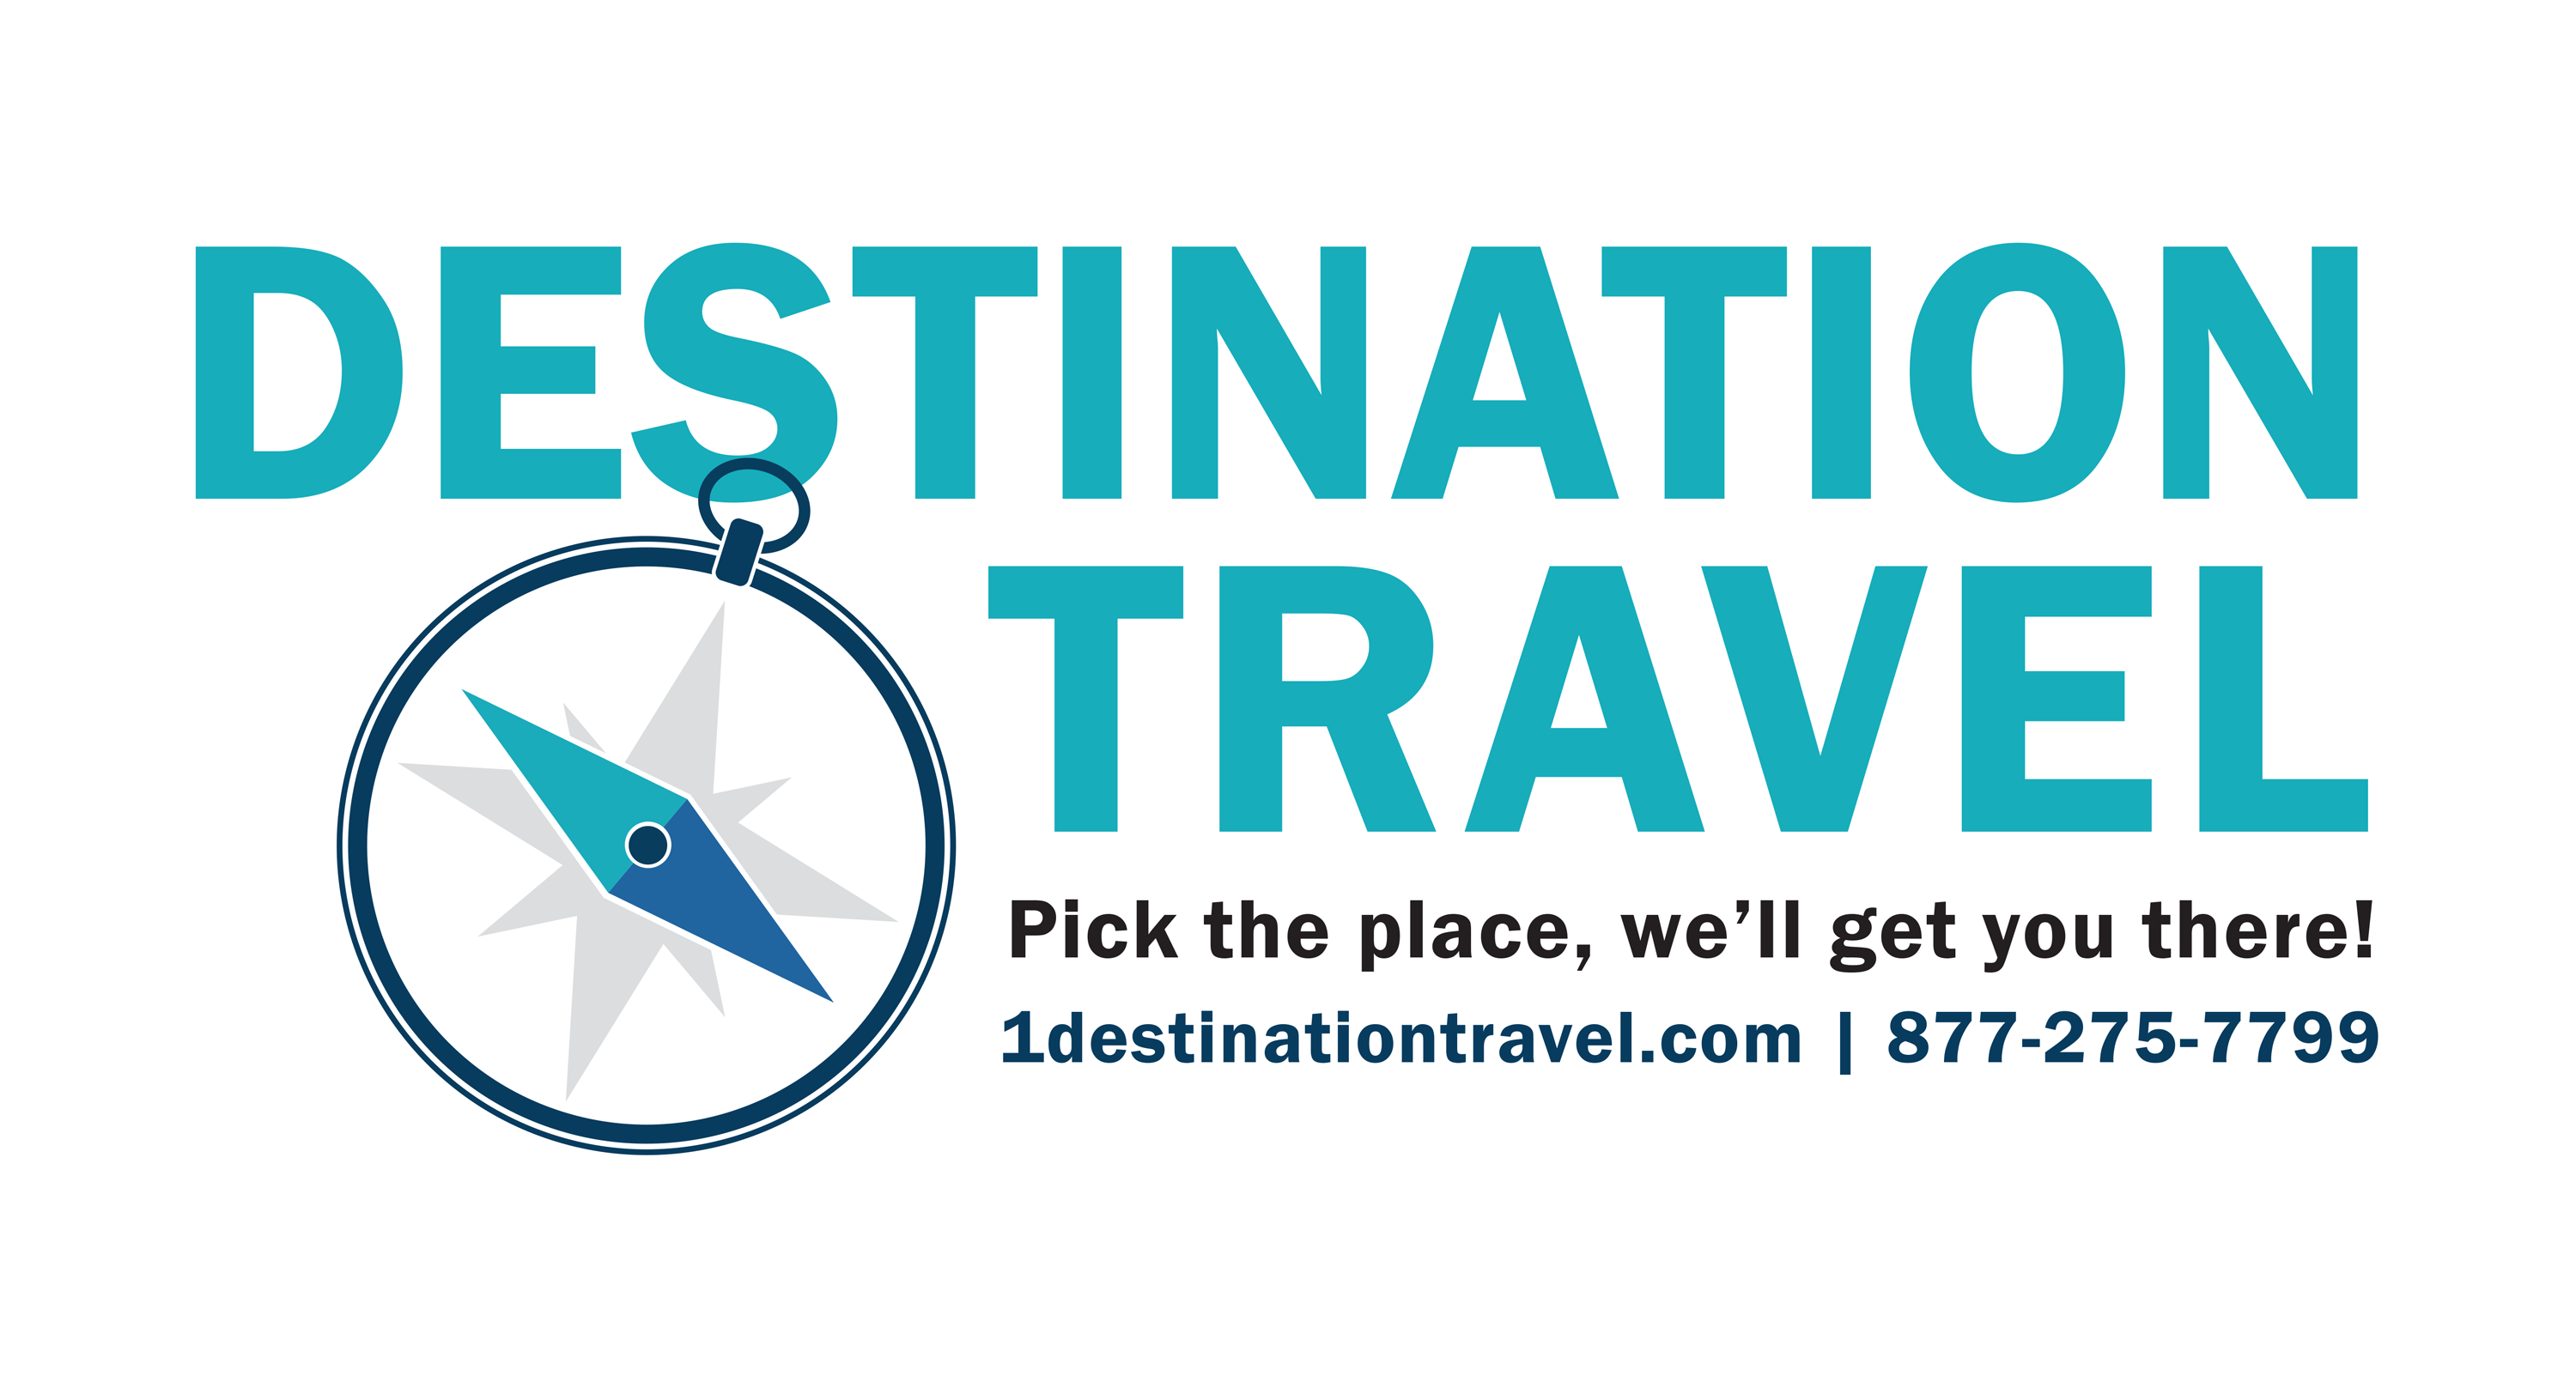 Destination Travel - Travel, Travel Agency, Travel, Vacation